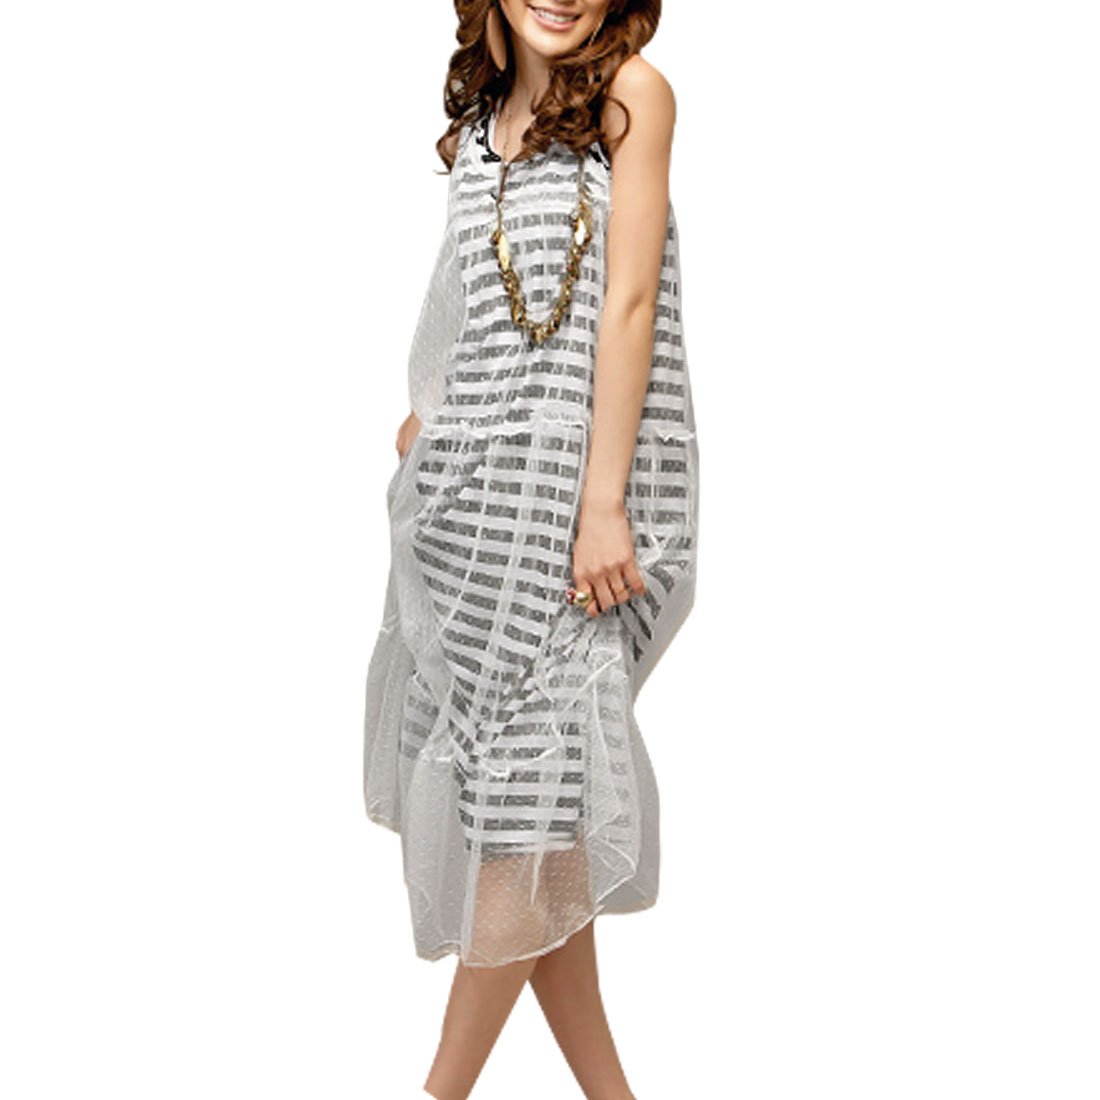 XS Black White Striped Sleeveless Tank Dress for Lady